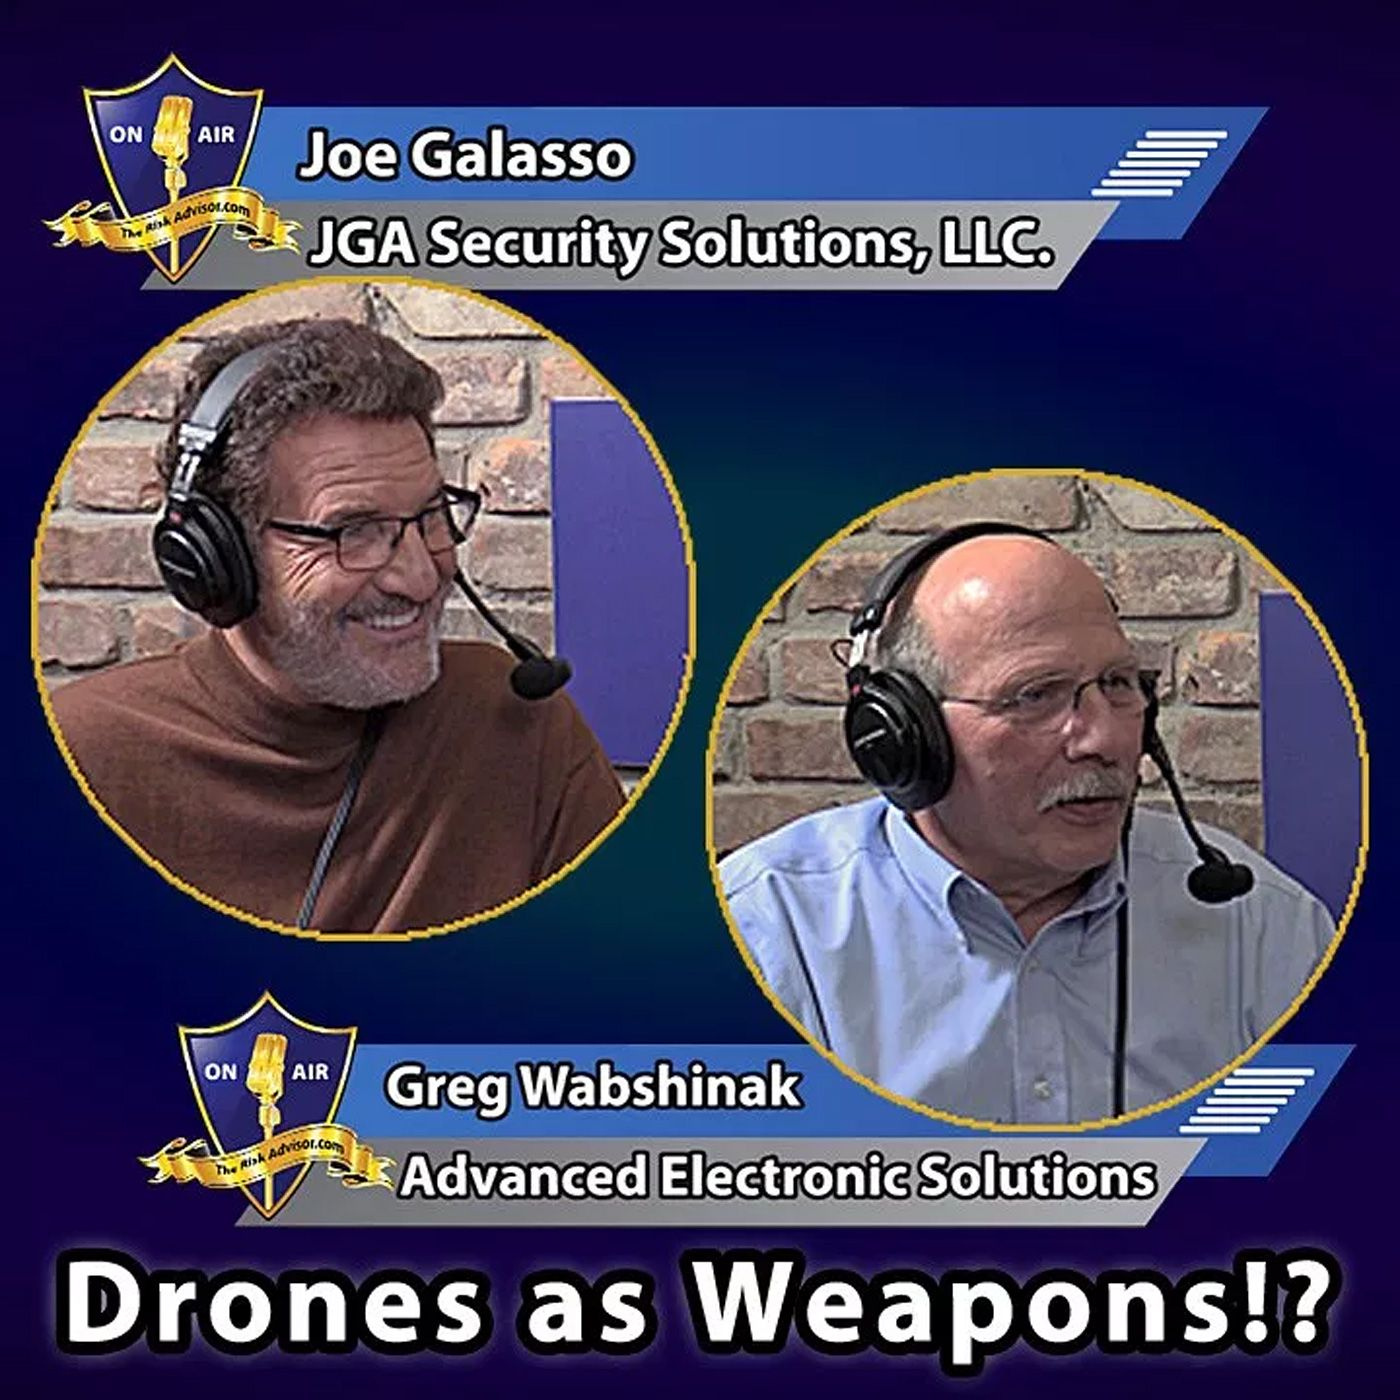 What Risks do Drones Present Us?